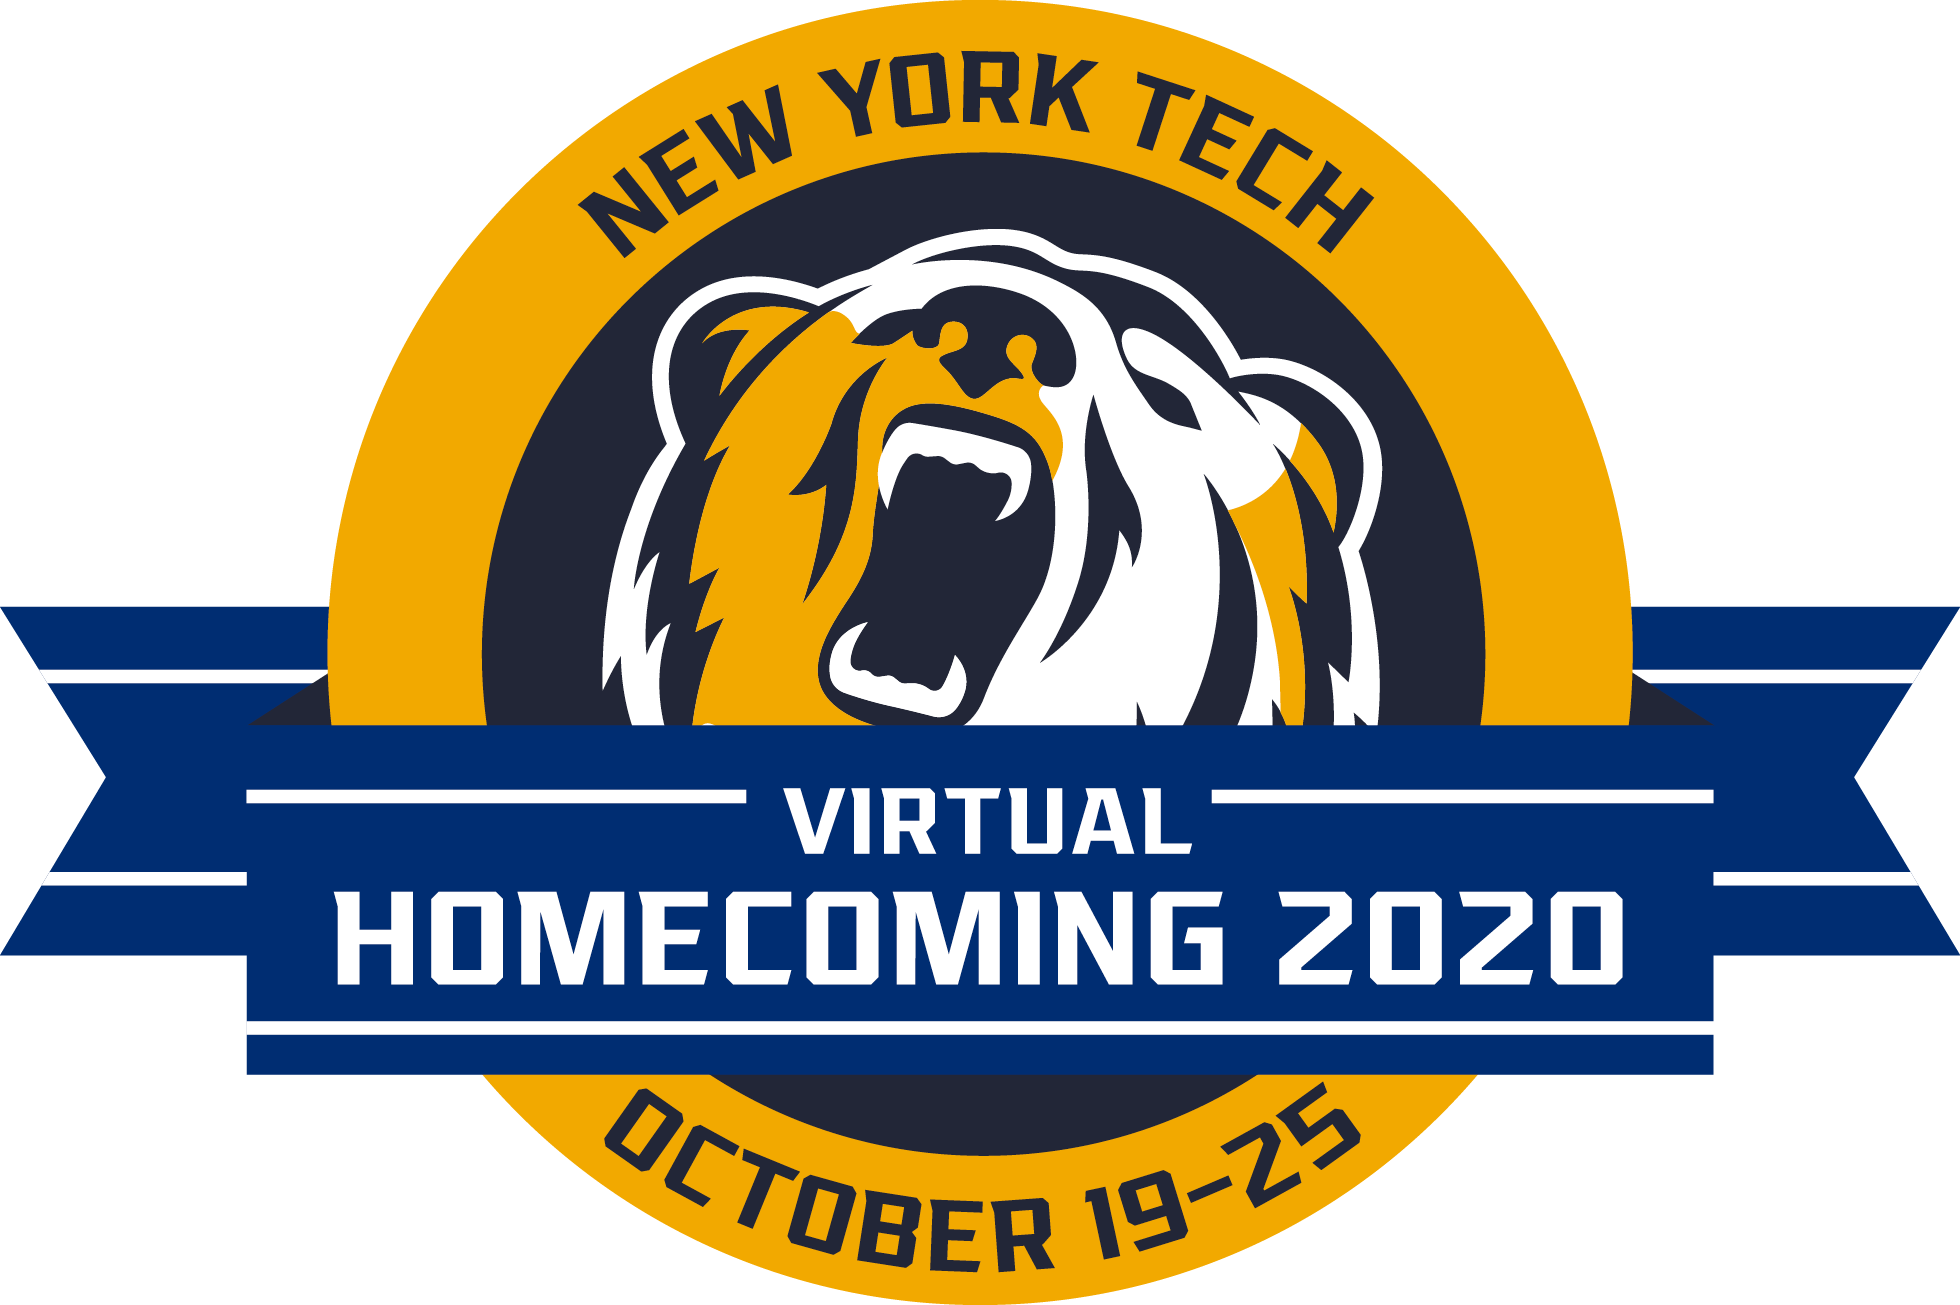 Join us, virtually, for the third annual New York Tech Homecoming - October 19-25, 2020